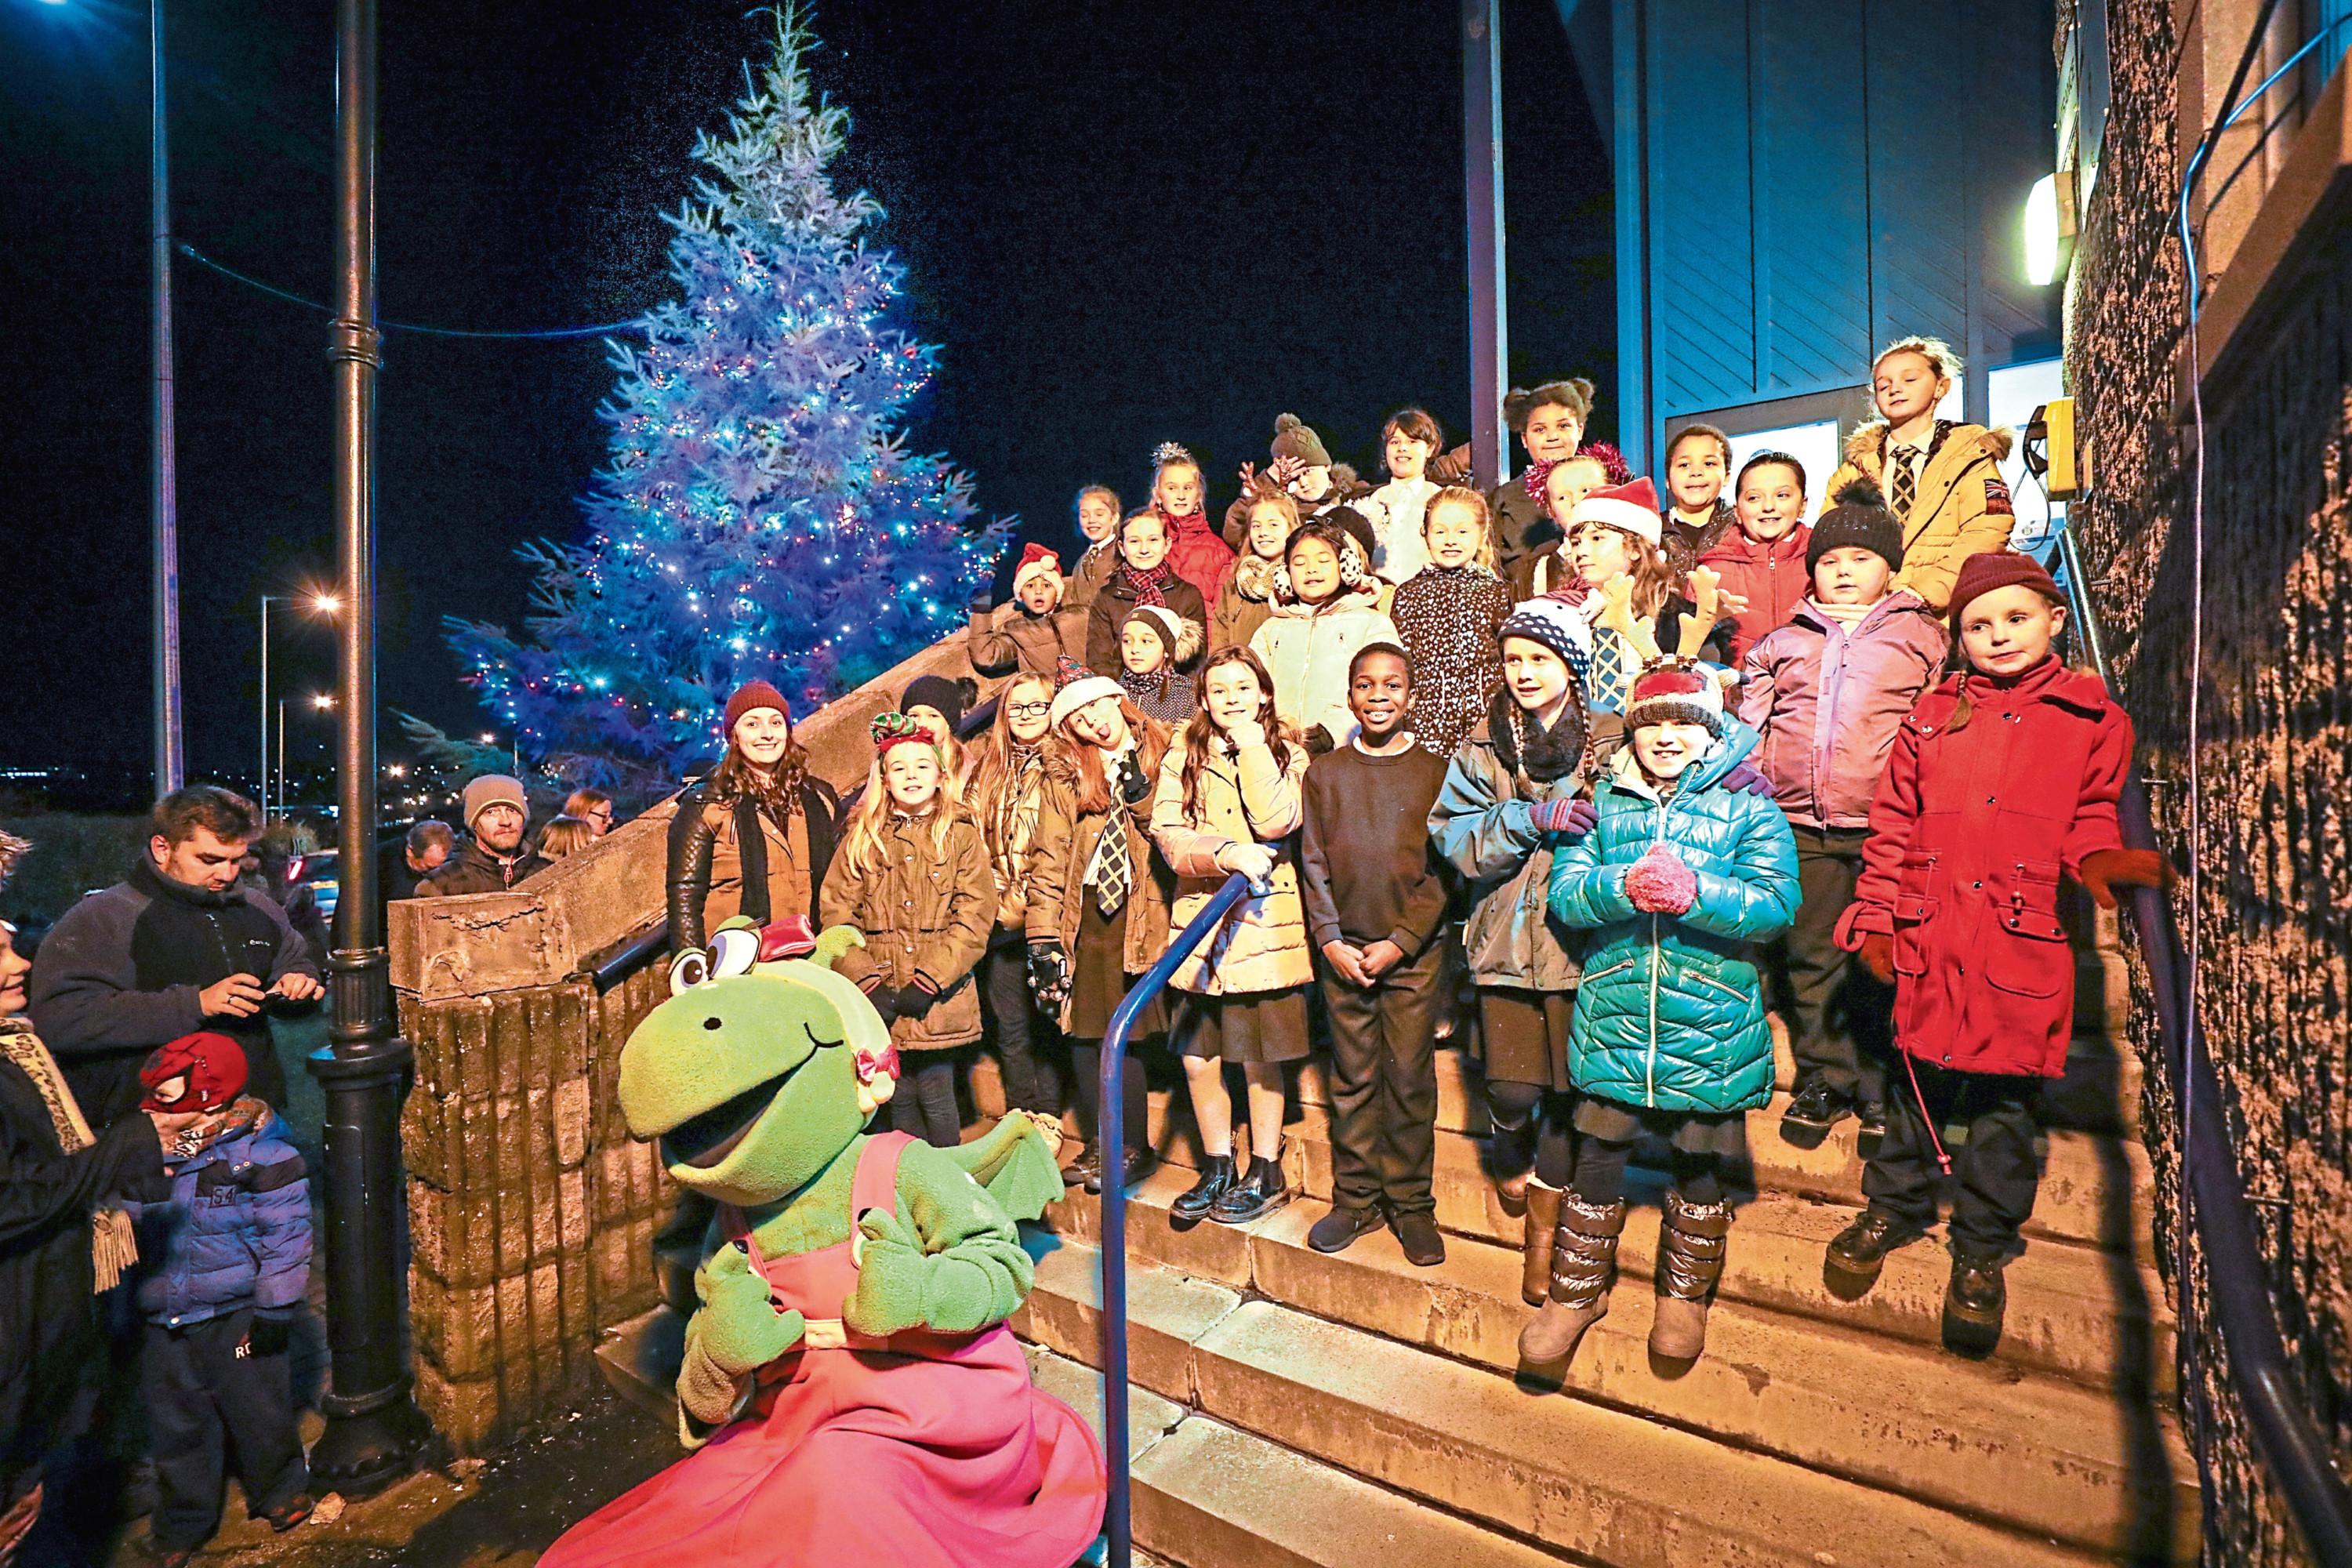 Pupils from St Francis Primary School choir sang at the Longhaugh Christmas lights switch-on